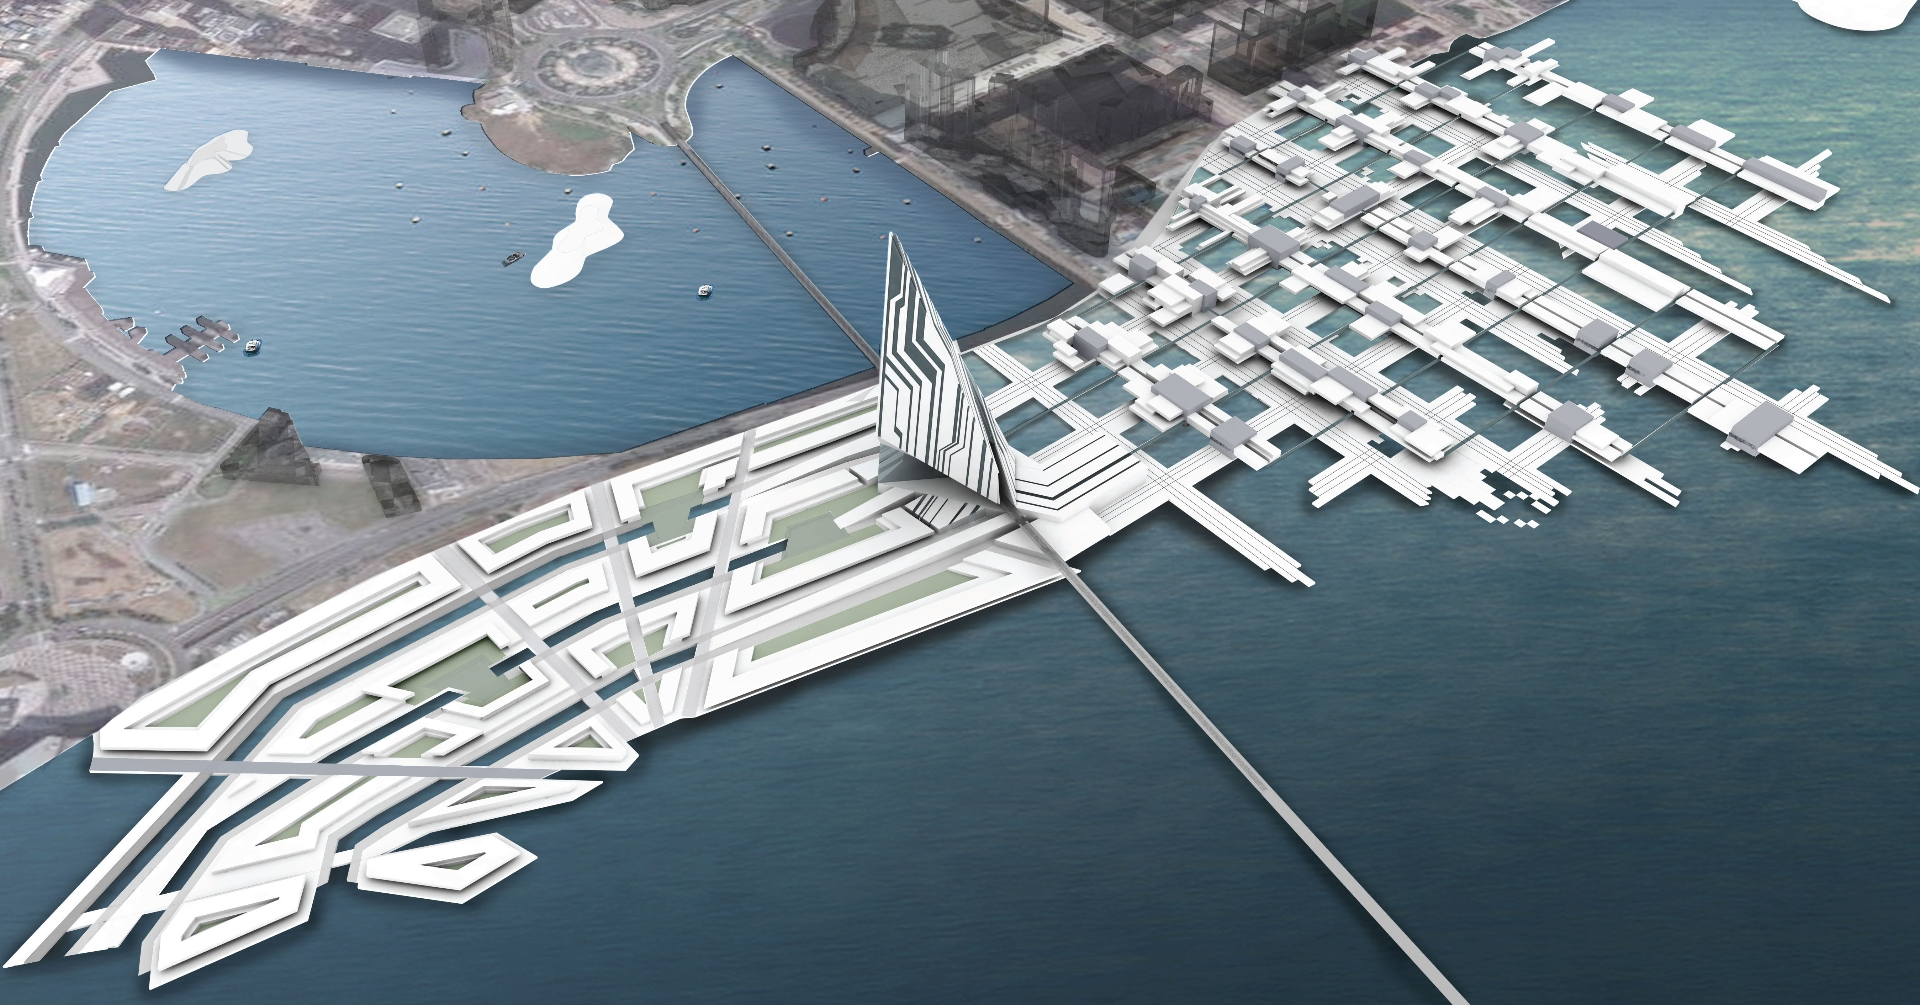 Enlarge Photo: The Possibility of an Island: Designing the New Macau Waterfront 8